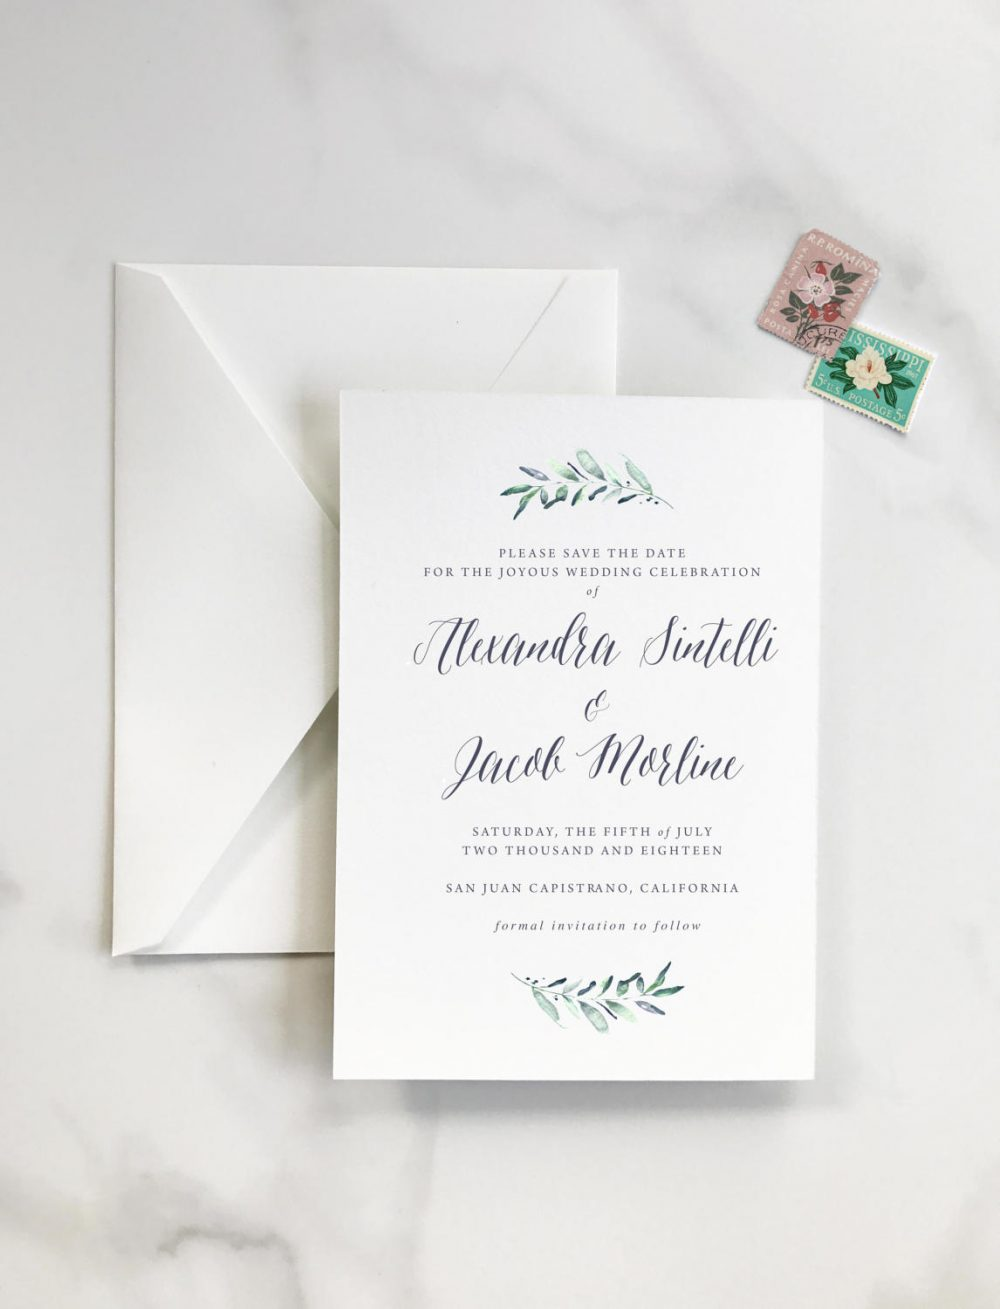 Rustic, Elegant - Olive Leaves Laurel Simple & Classic Save The Date Deposit For Print Order